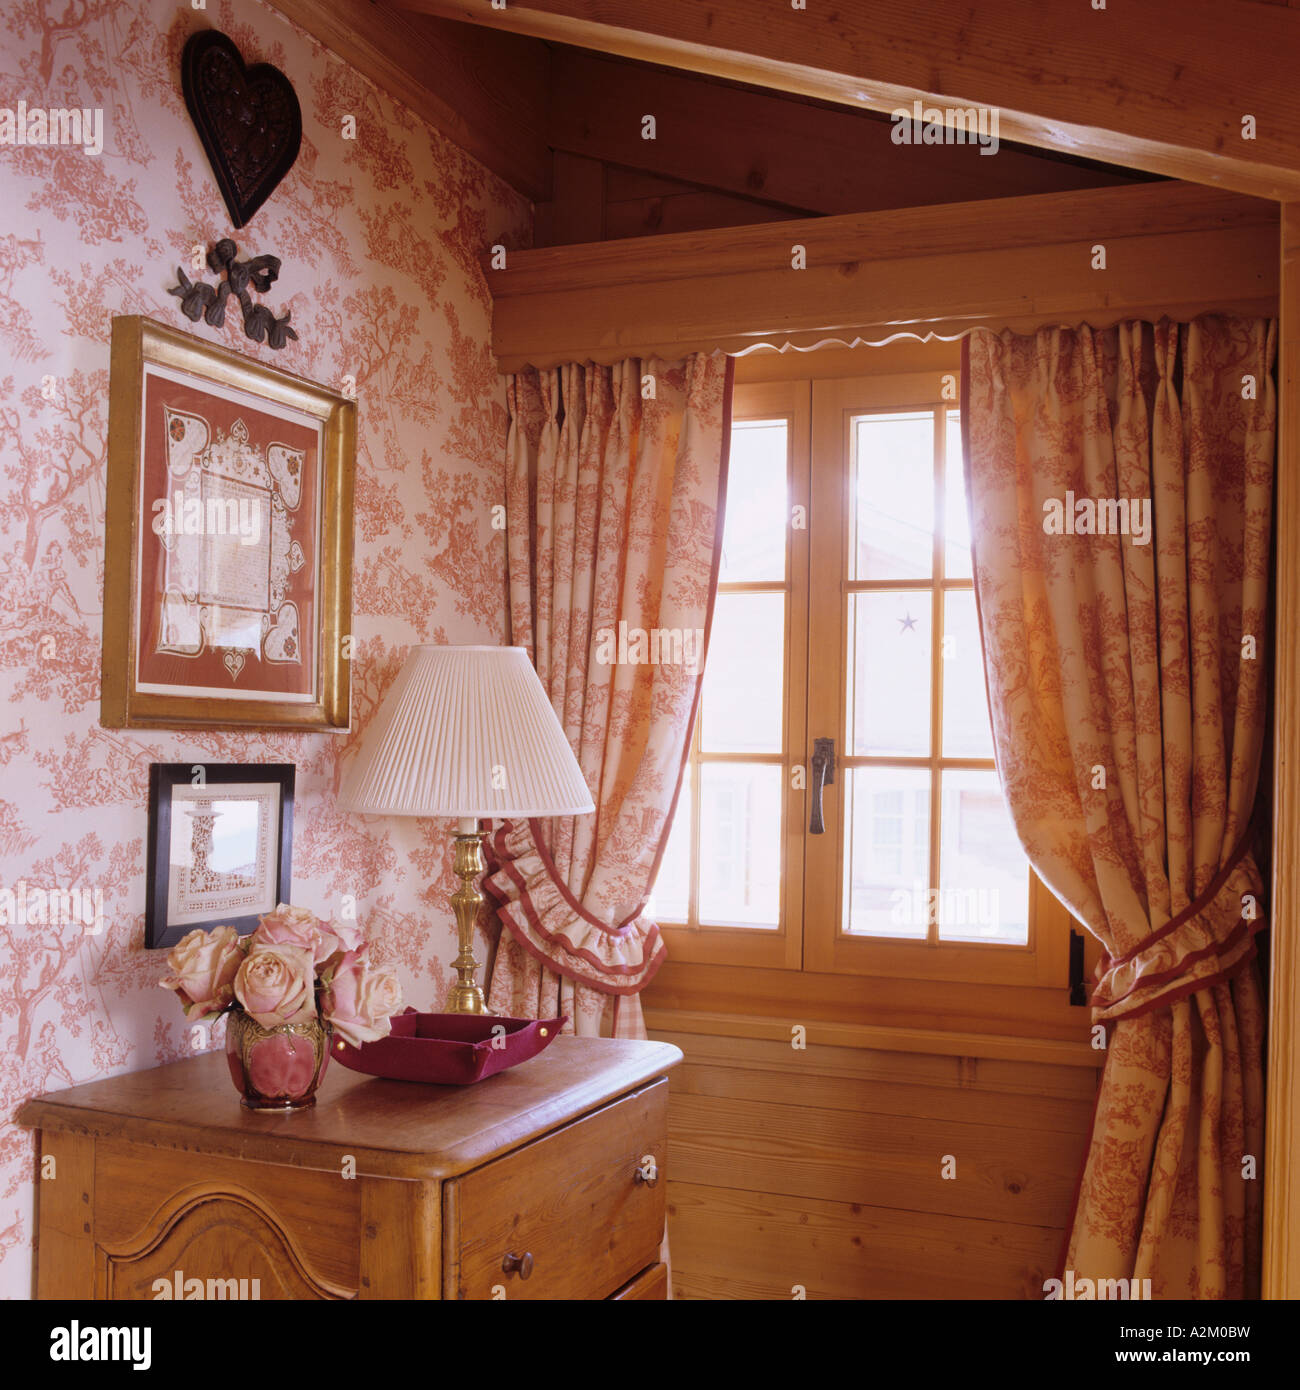 Window in room with matching curtains and wallpaper in a traditional chalet in Switzerland - Stock Image